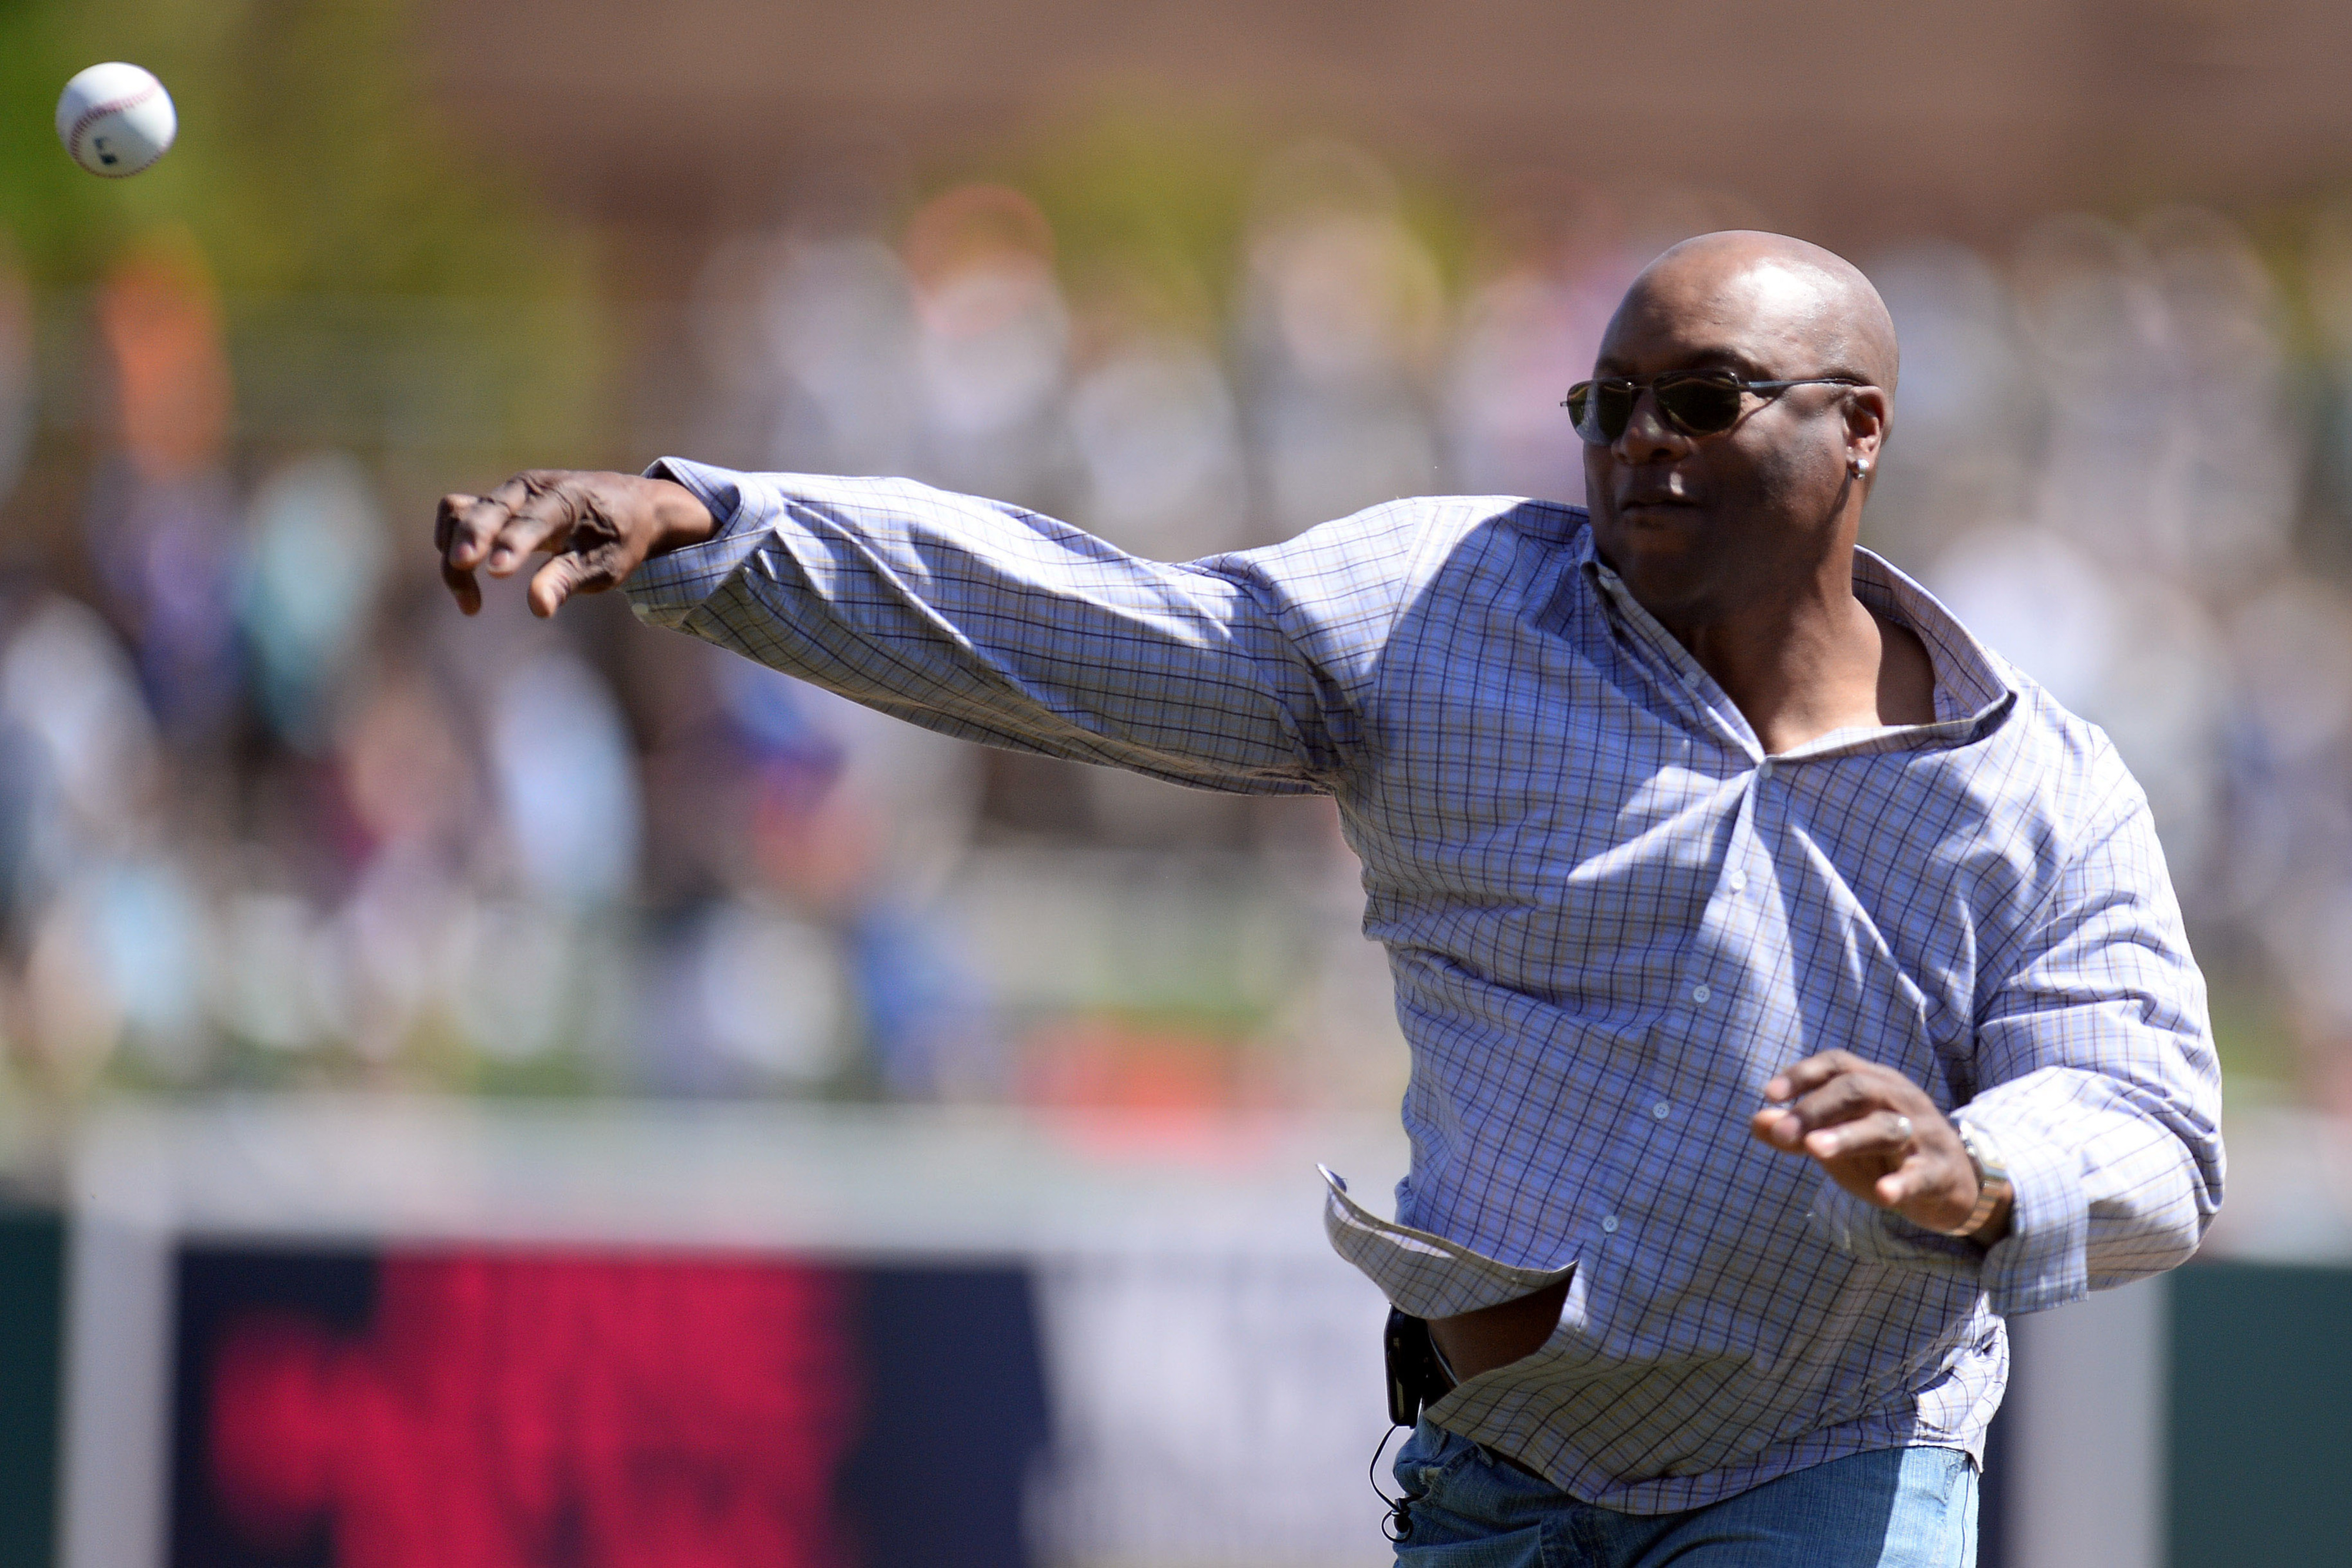 The Bo Jackson fiasco in Tampa was a sign of even more disappointment to come...